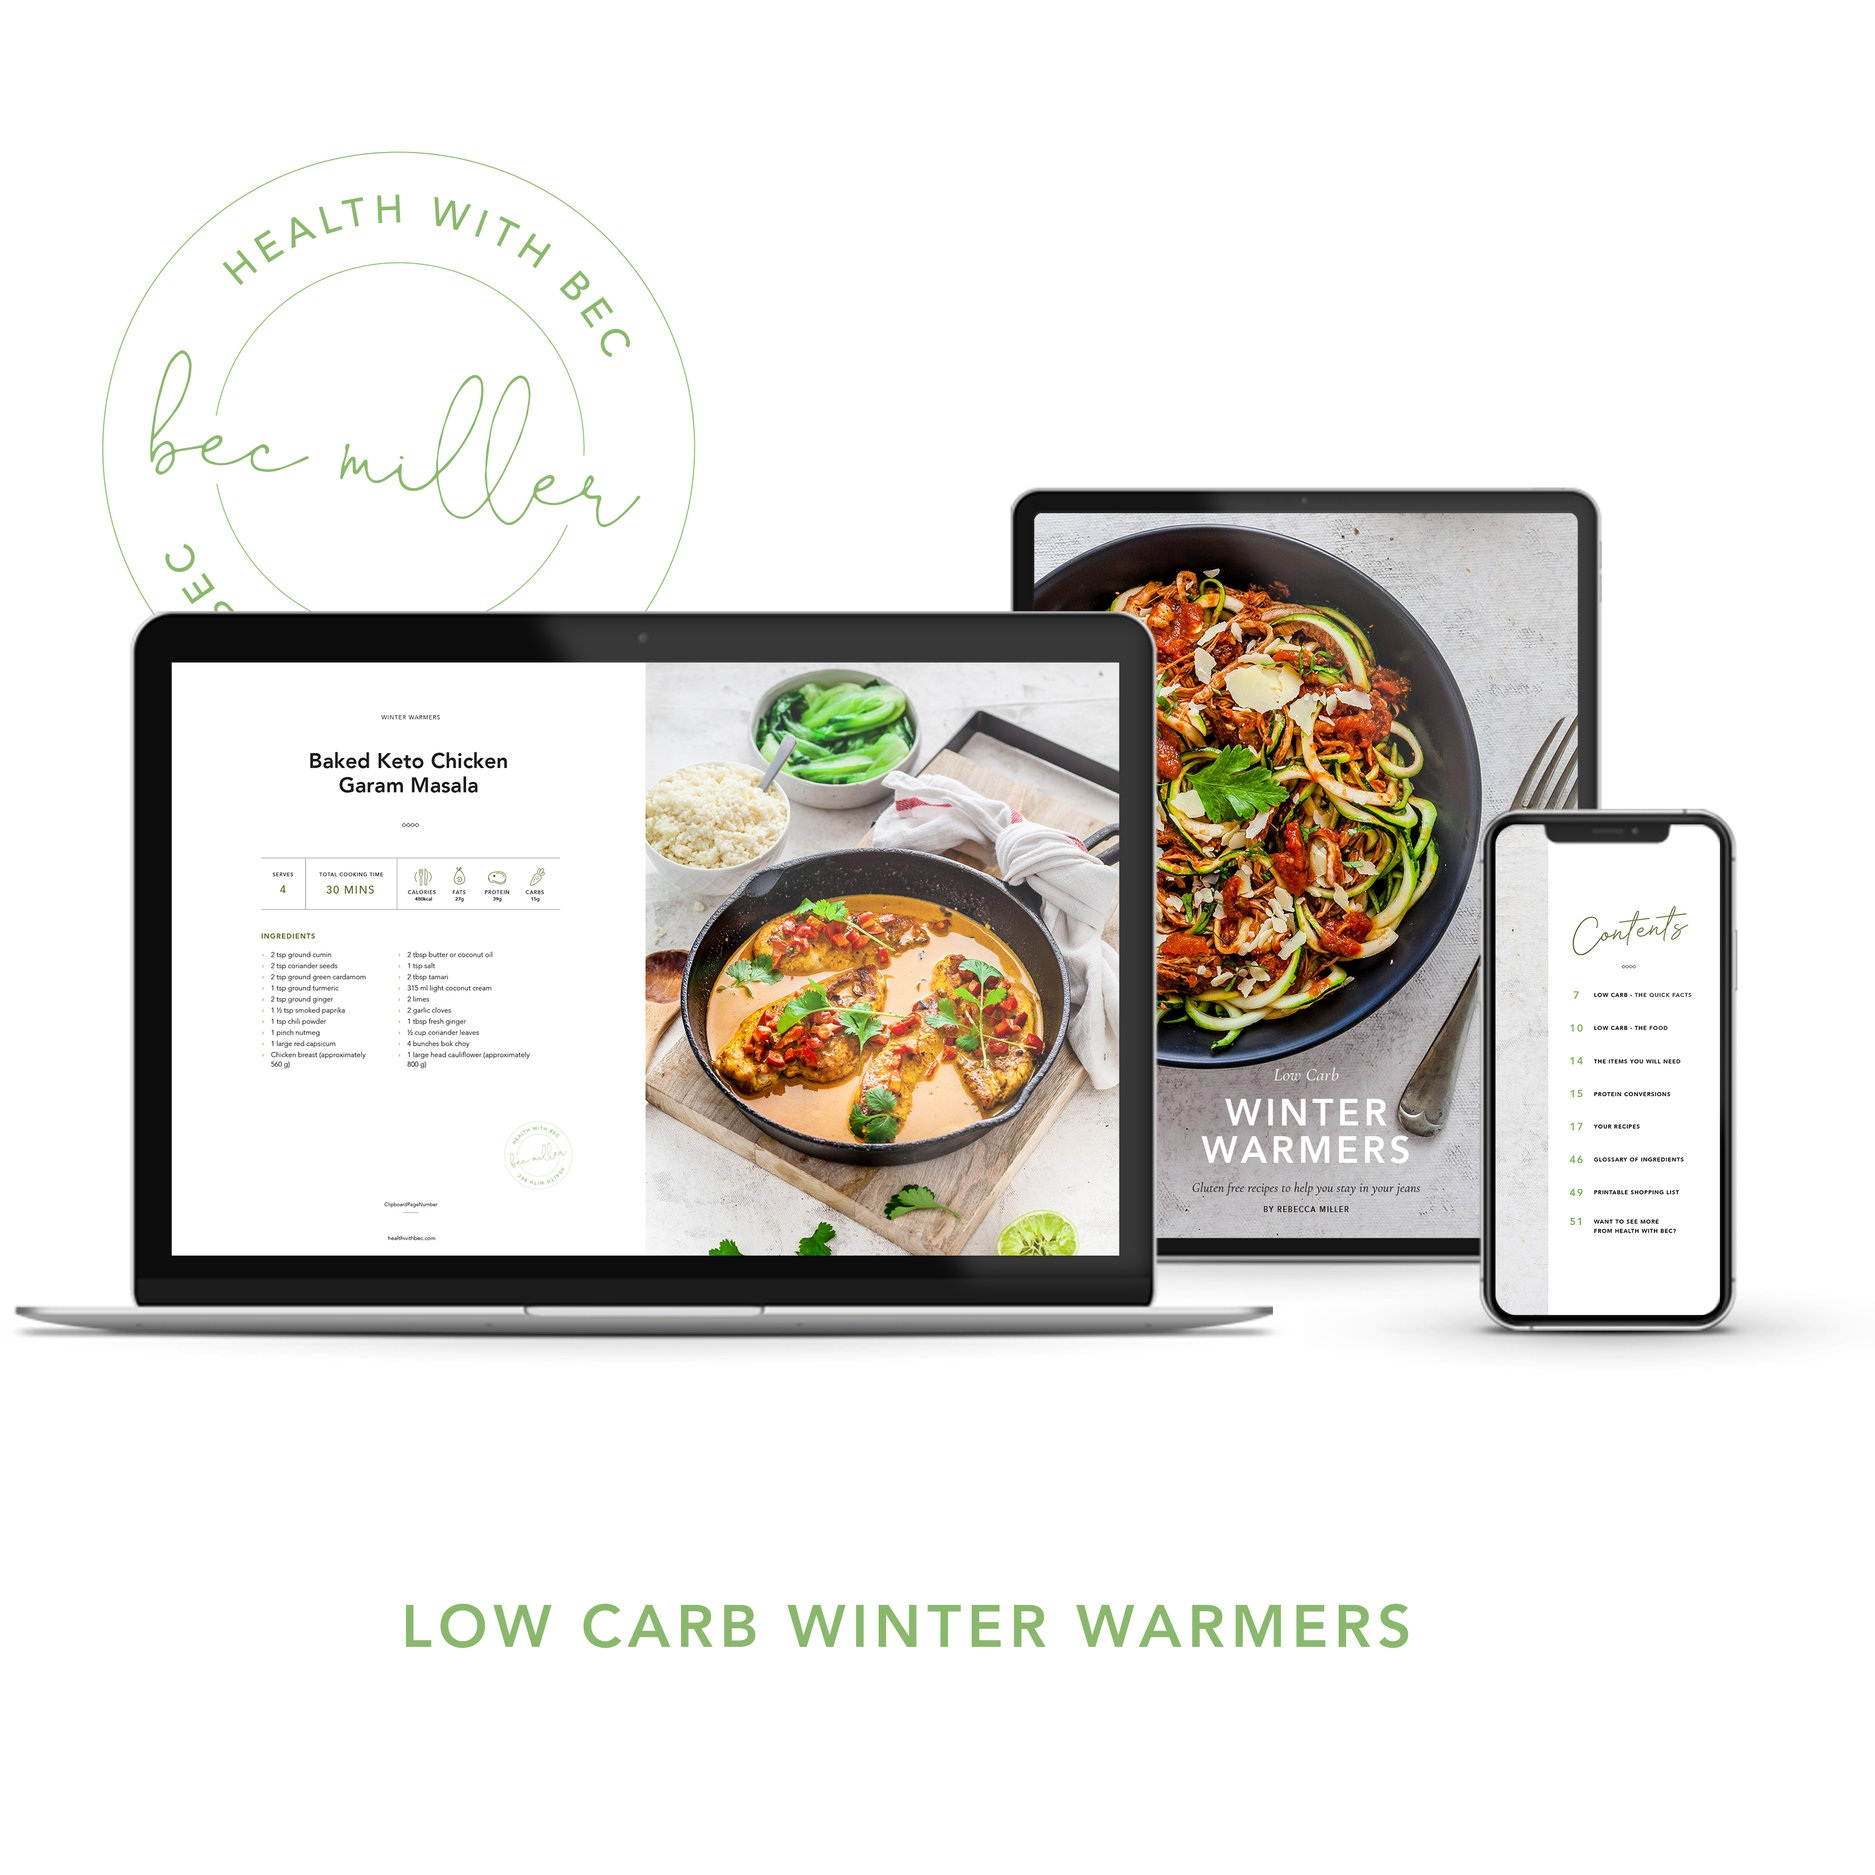 Shop: Low Carb Winter Warmers eBook $19.95 -